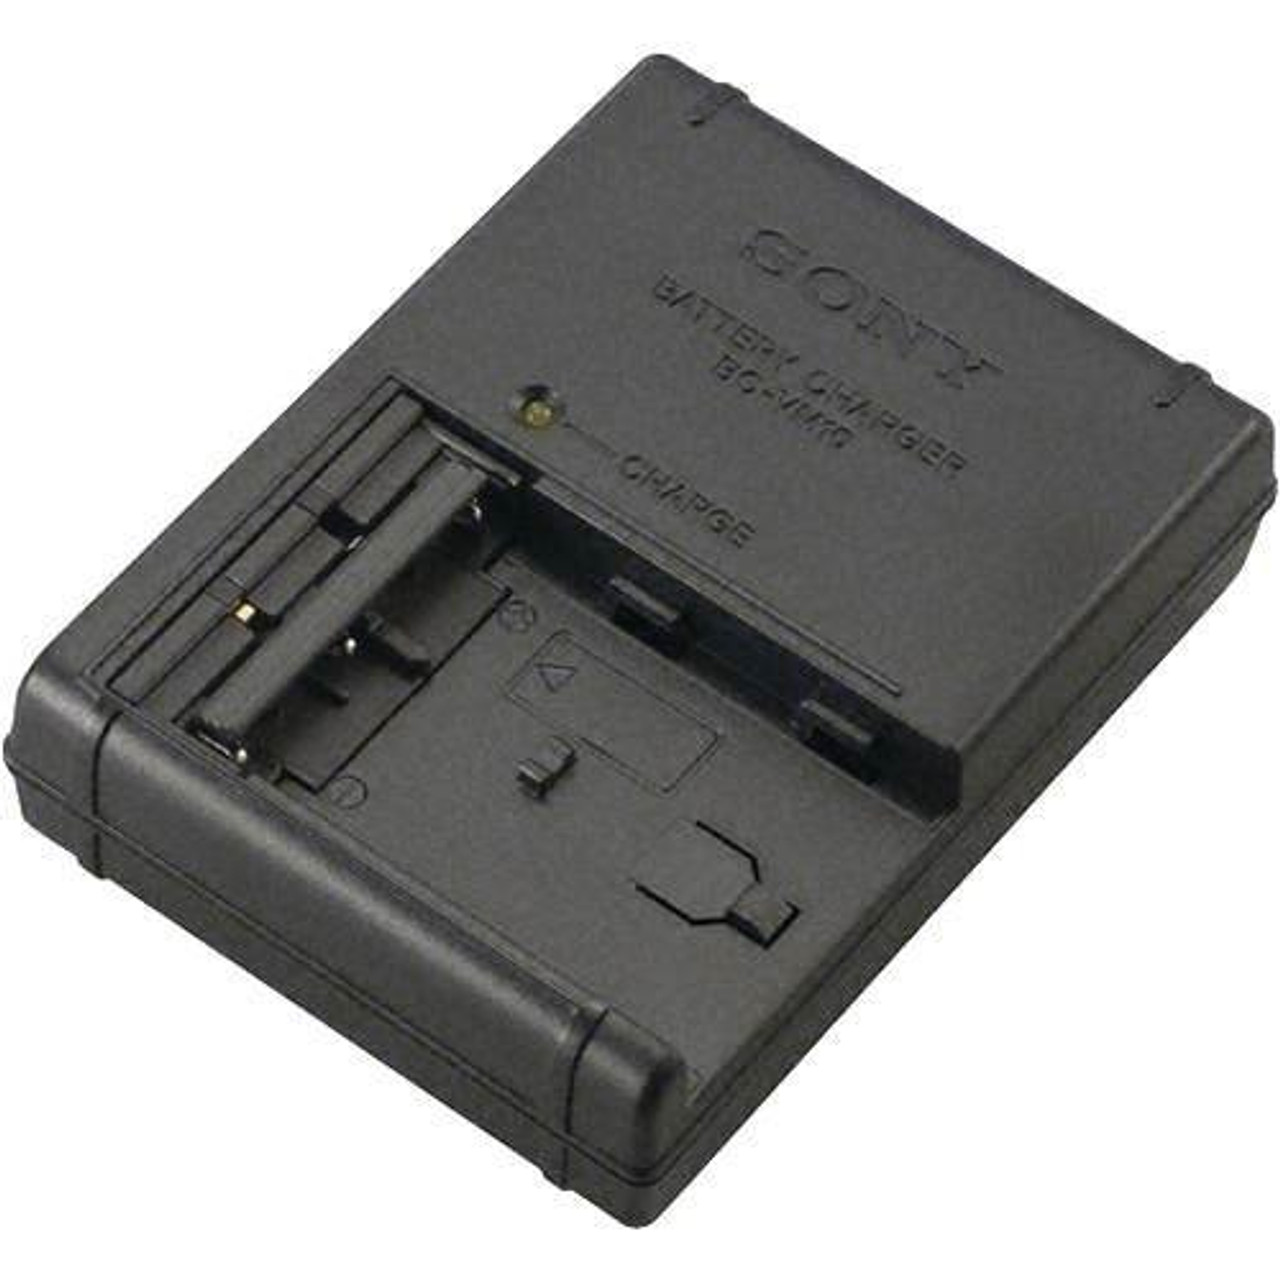 Sony BC-VM10 Battery Charger